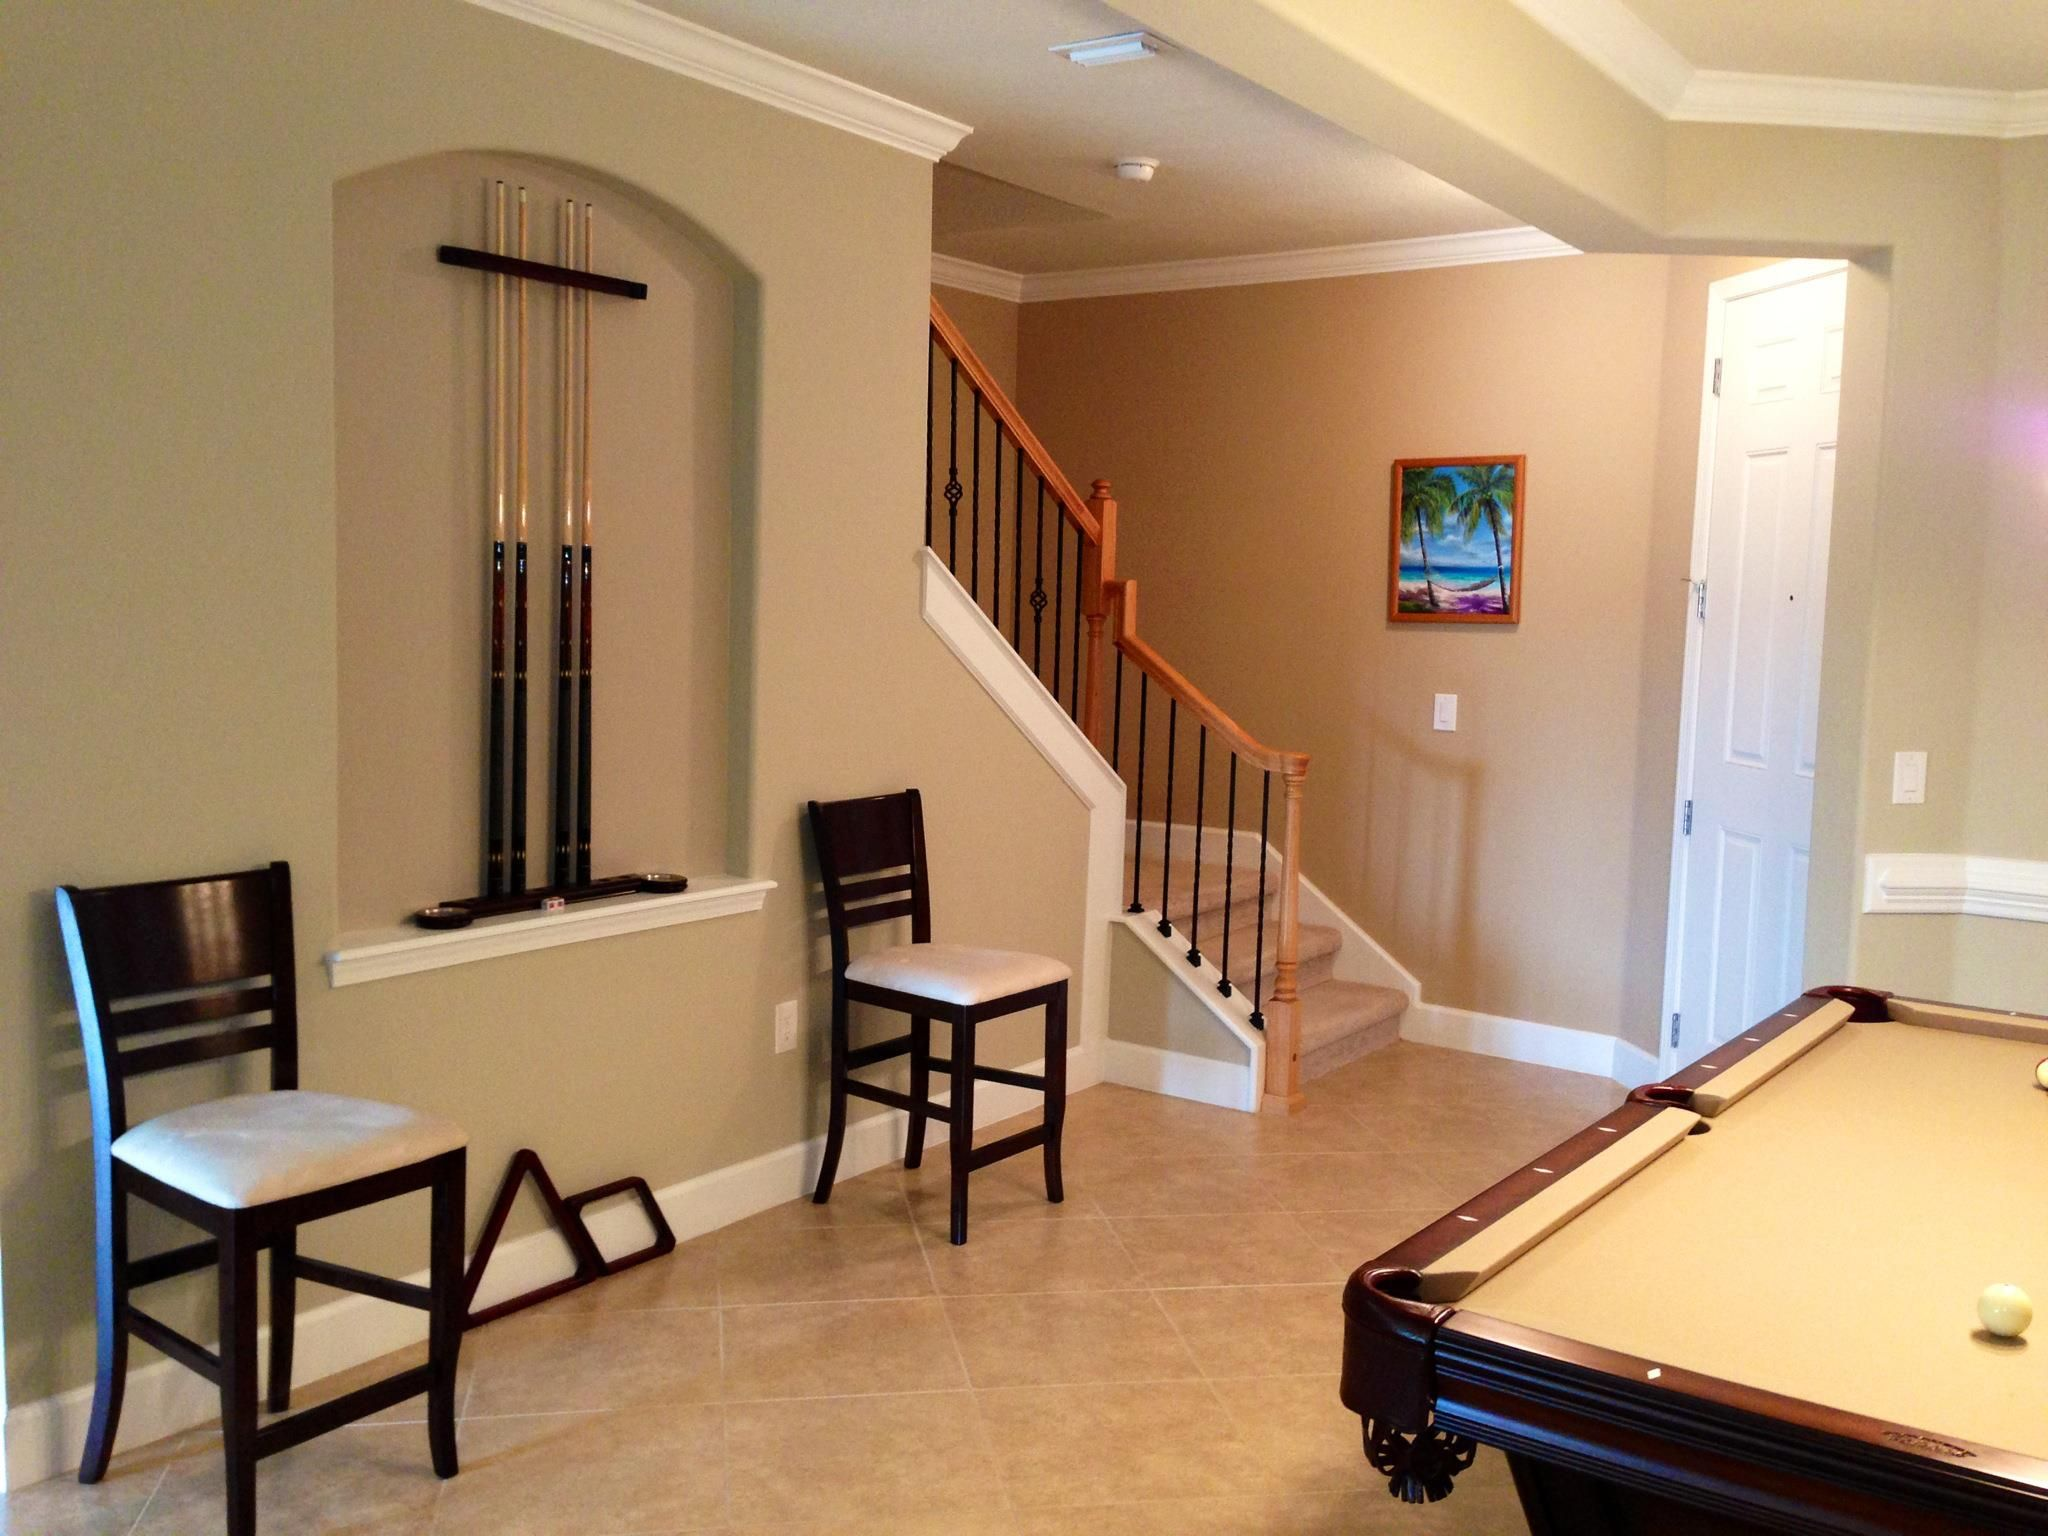 Read reviews and buy the best pool table from top companies including harvil, eastpoint sports, mizerak and more. Pin by Kevin W on Home Decor | Pool table room, Pool table ...